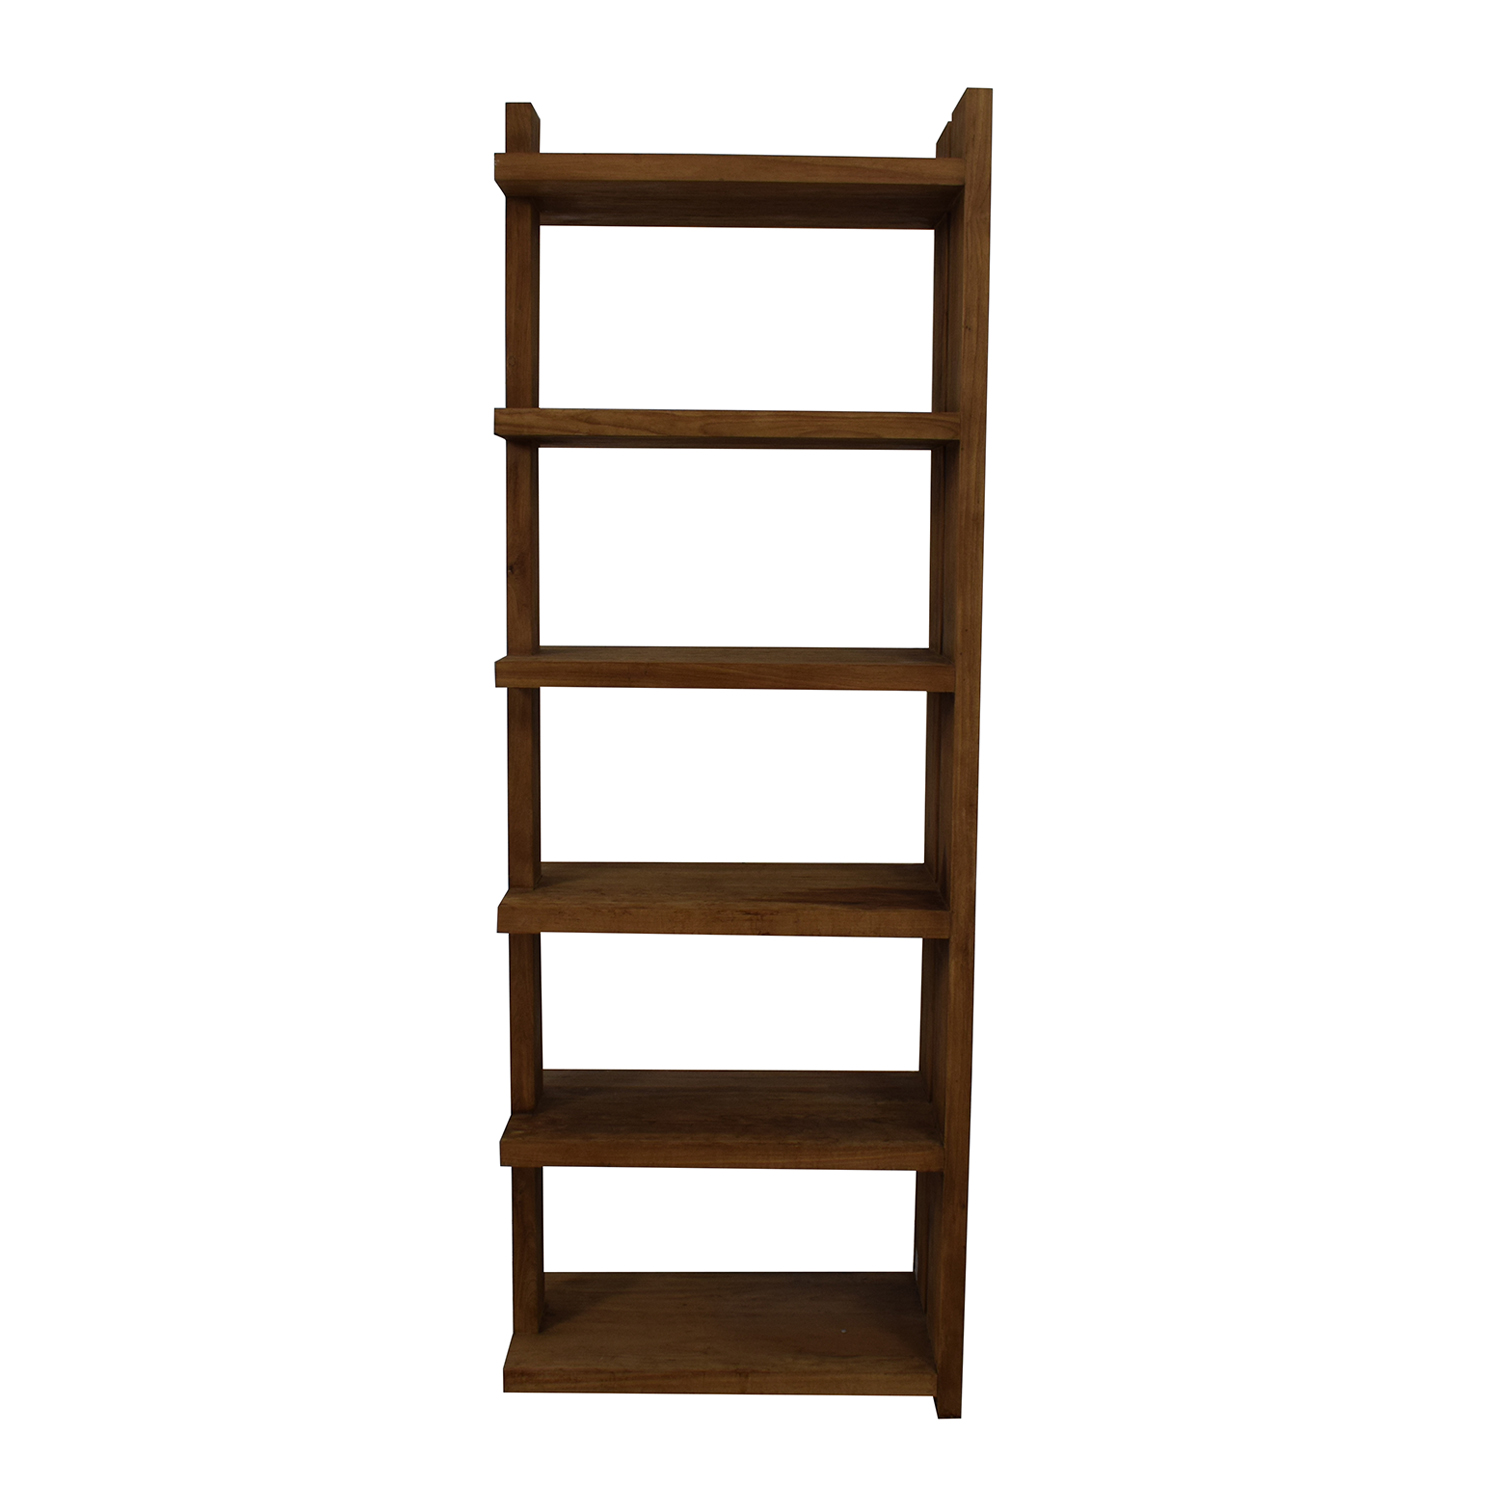 shop ABC Carpet & Home Harmony Etagere Bookcases ABC Carpet & Home Storage